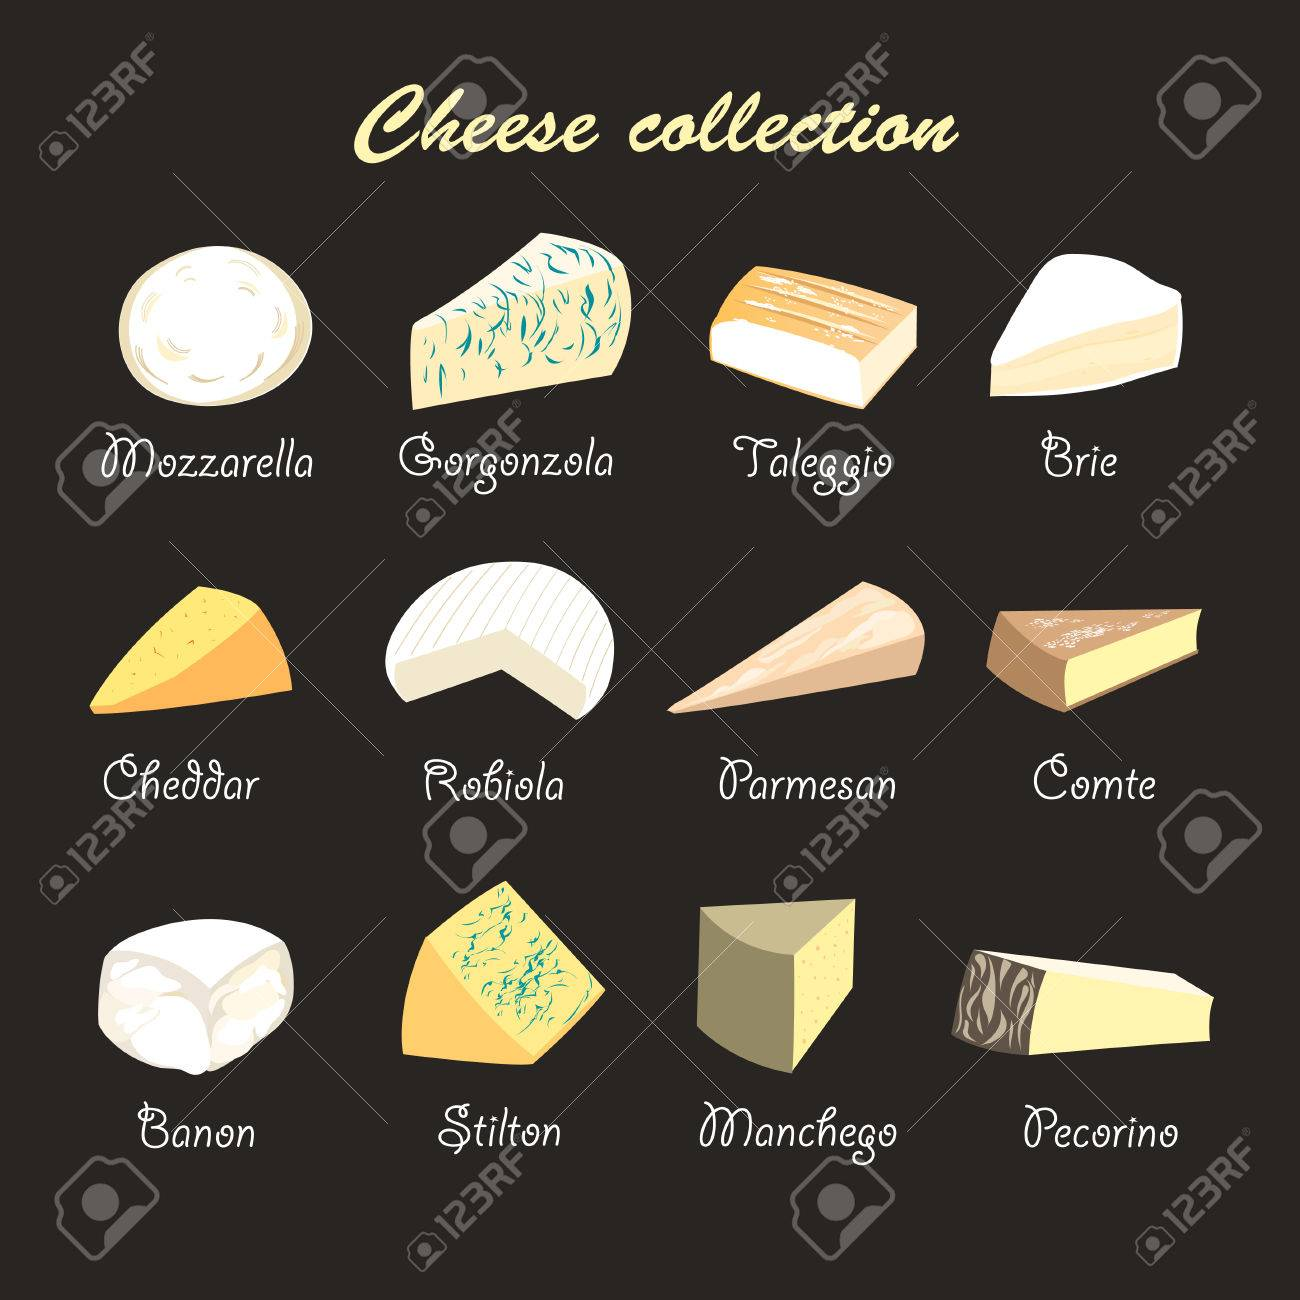 graphic beautiful collection of cheeses on a dark background - 34695020